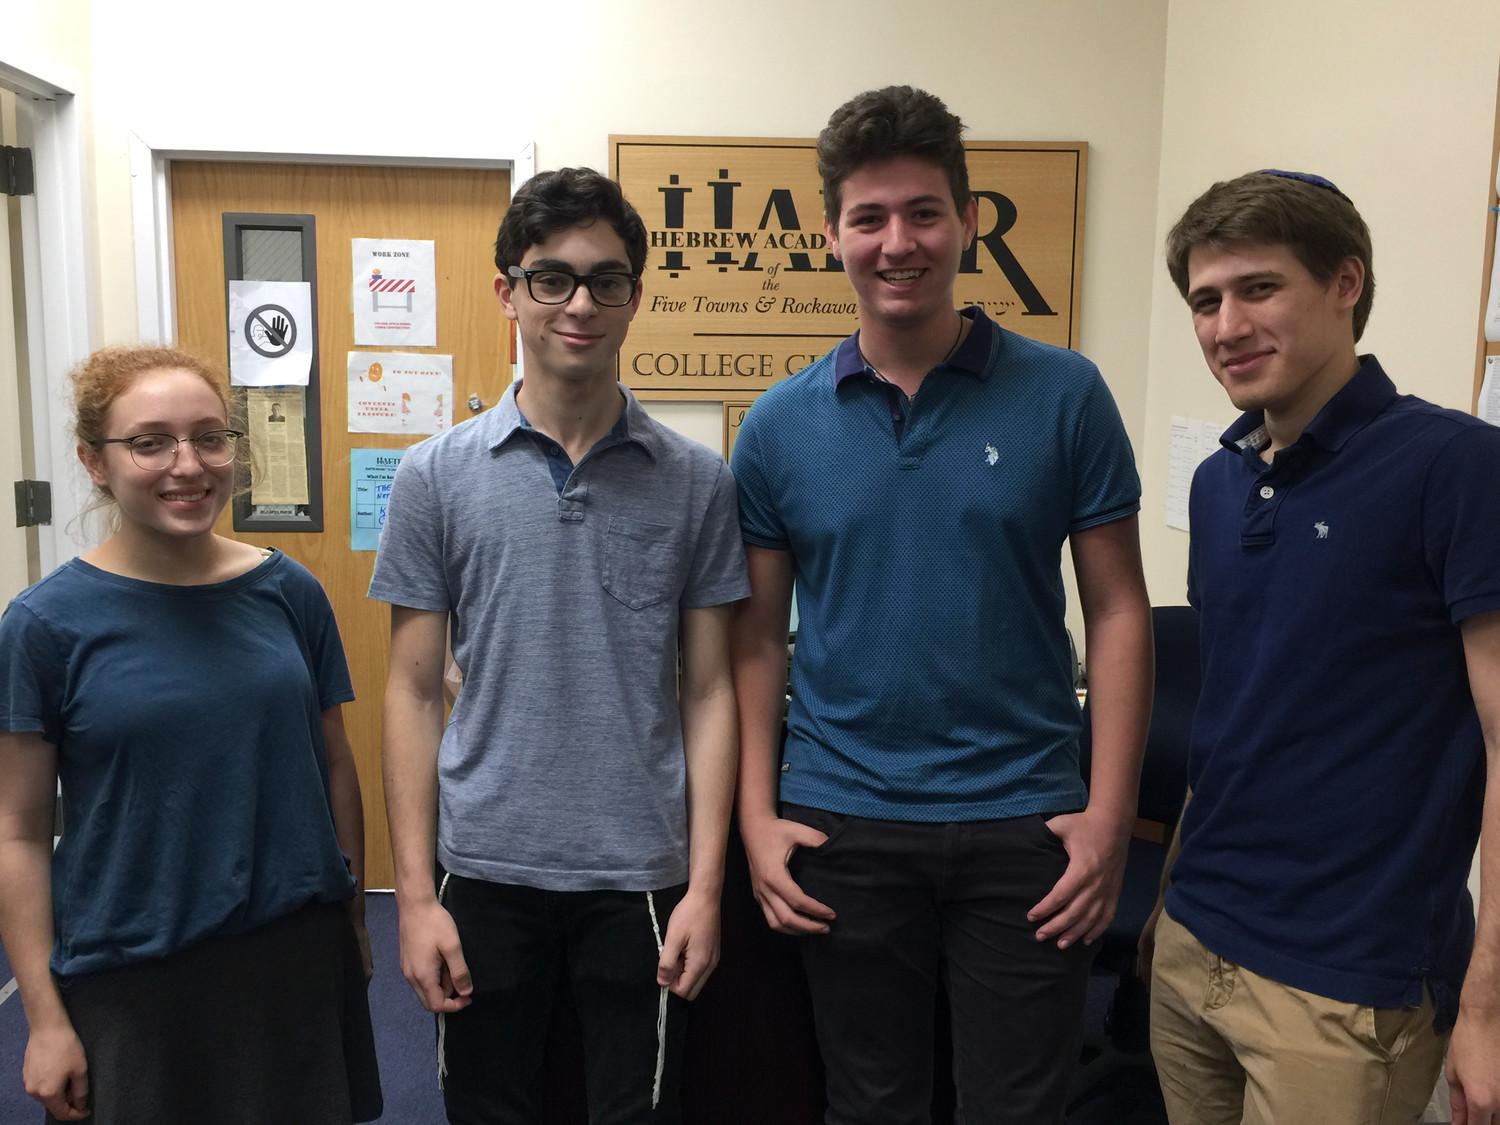 Miriam Kopyto, left, Arieh Chaiken, Rafael Levin and Benjamin Gottesman are HAFTR High School seniors who were named Commended Students by the National Merit Scholarship Program.